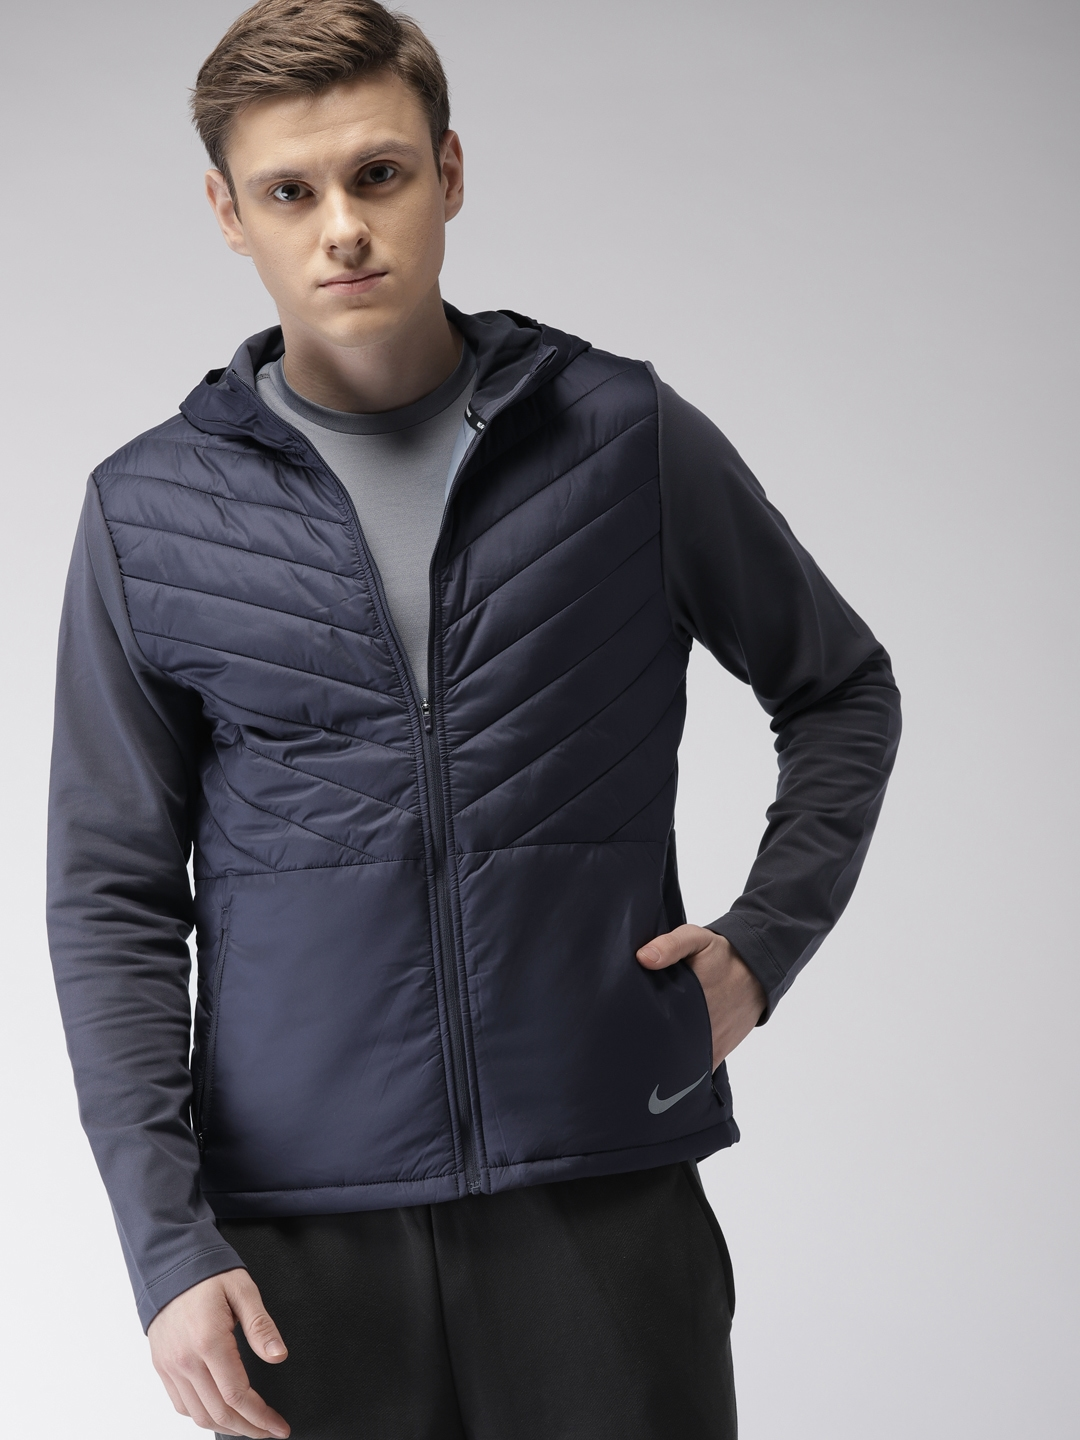 empujar en un día festivo Descolorar  Buy Nike Men Navy AS M NK AROLYR Solid Thermal Insulation Technology Hooded  Puffer Jacket - Jackets for Men 7500714 | Myntra